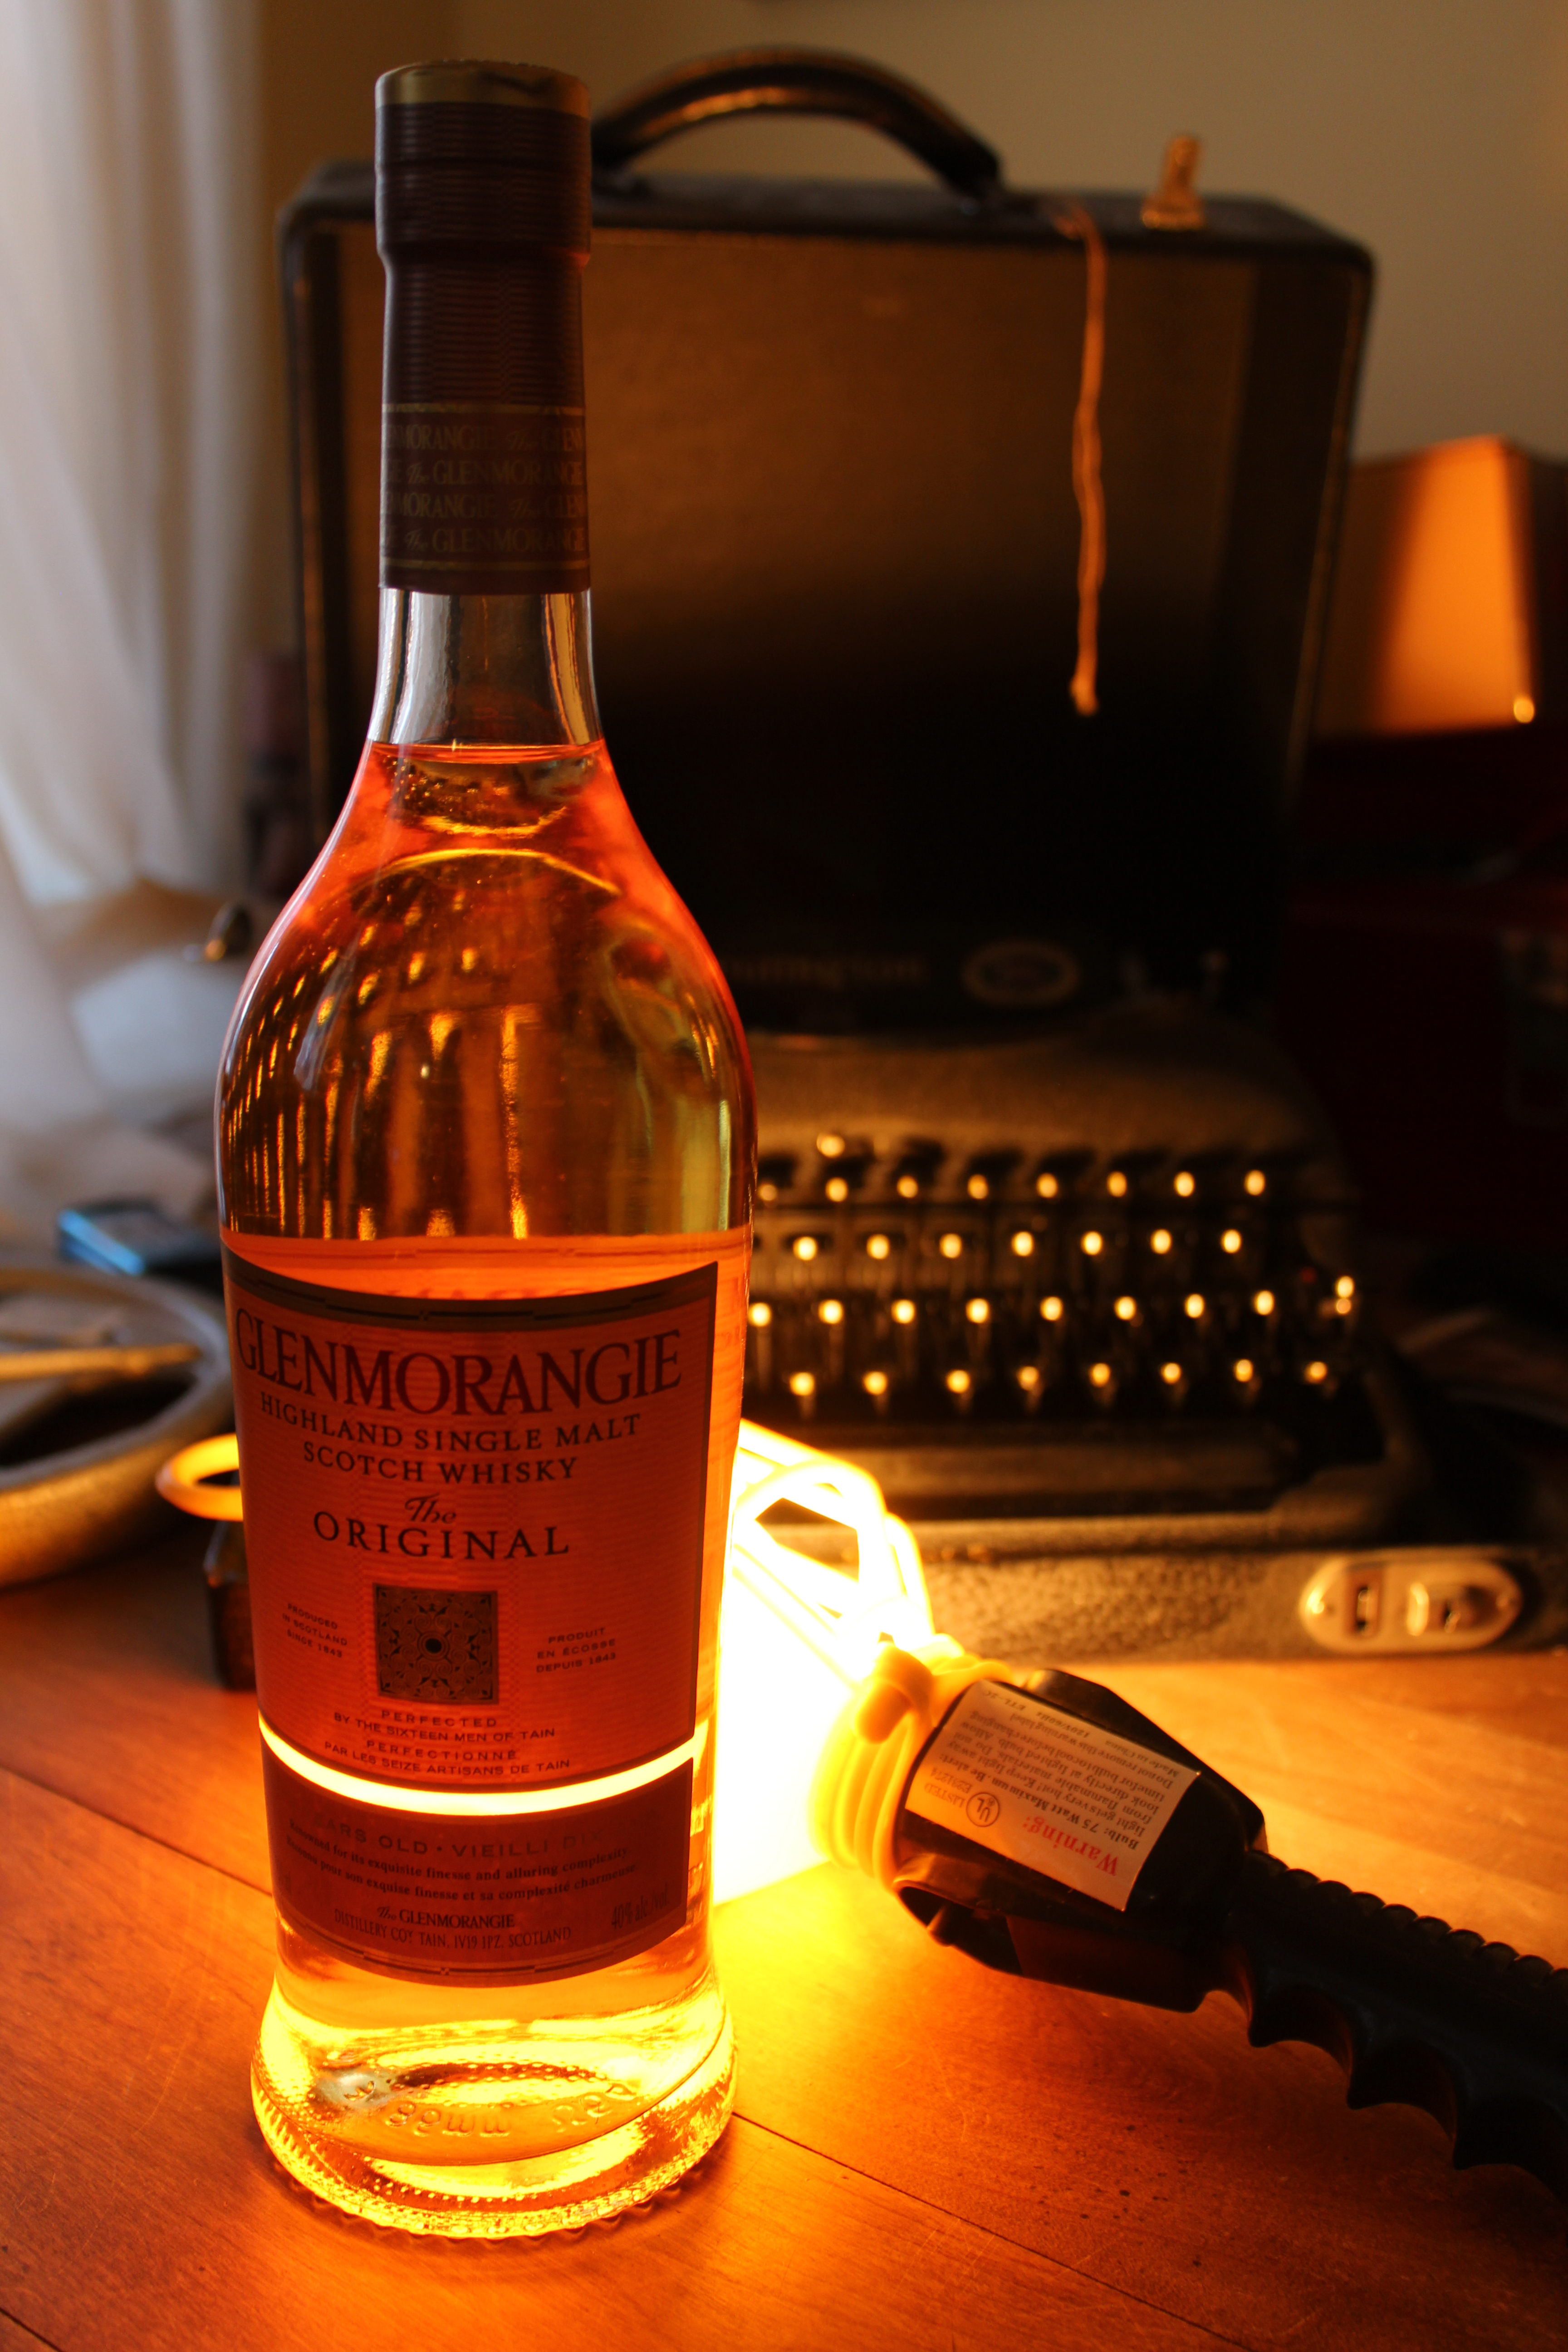 Glenmorangie 10y Original with Dan